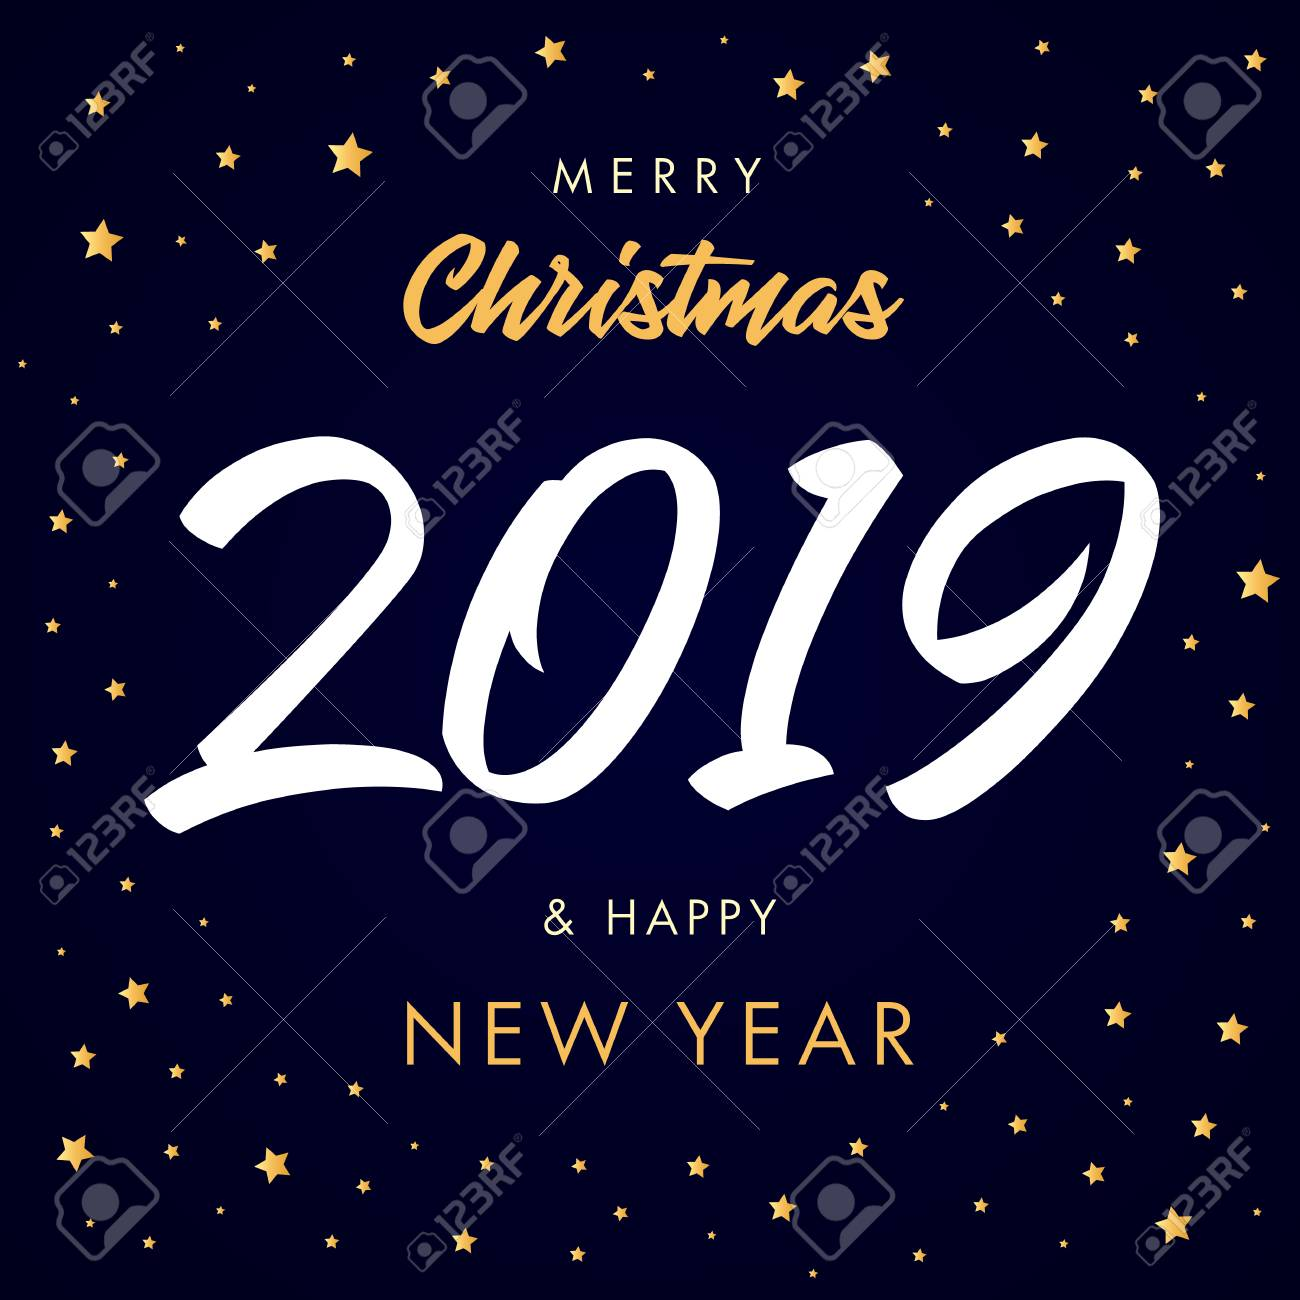 merry christmas calligraphy 2019 and happy new year greeting card vector happy new year illustration